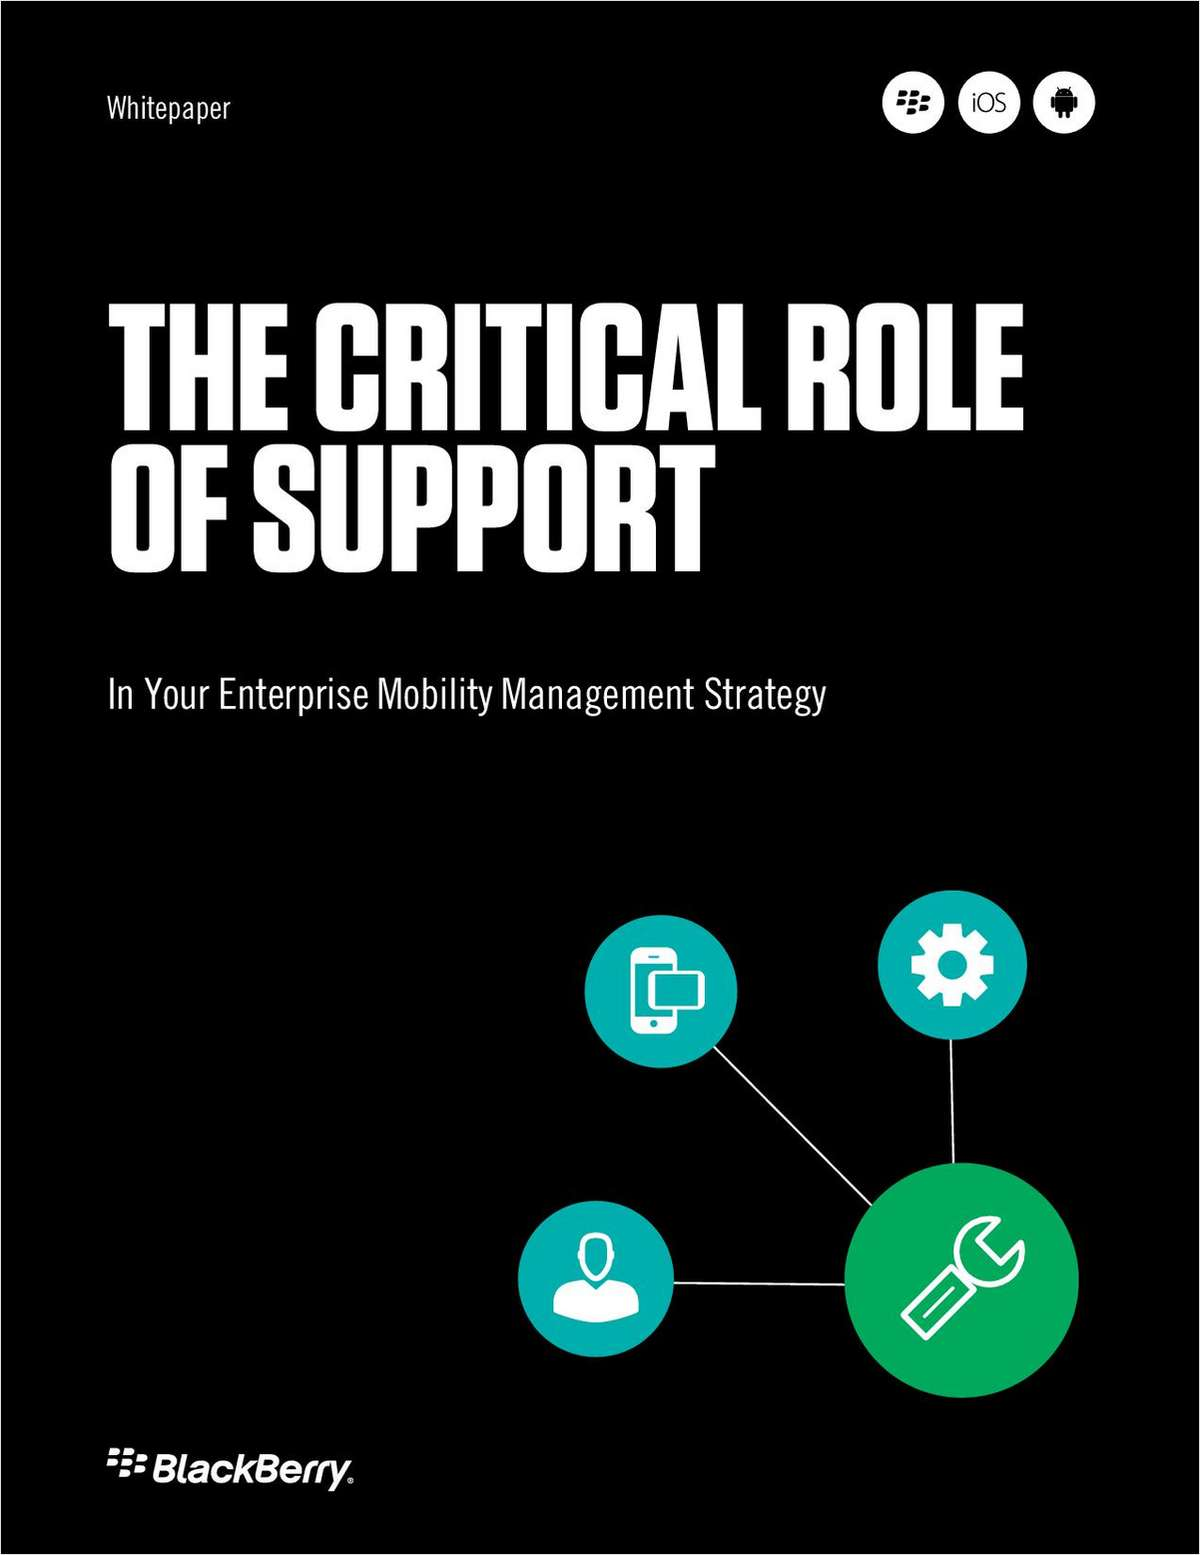 The Critical Role of Support in Your Enterprise Mobility Management Strategy